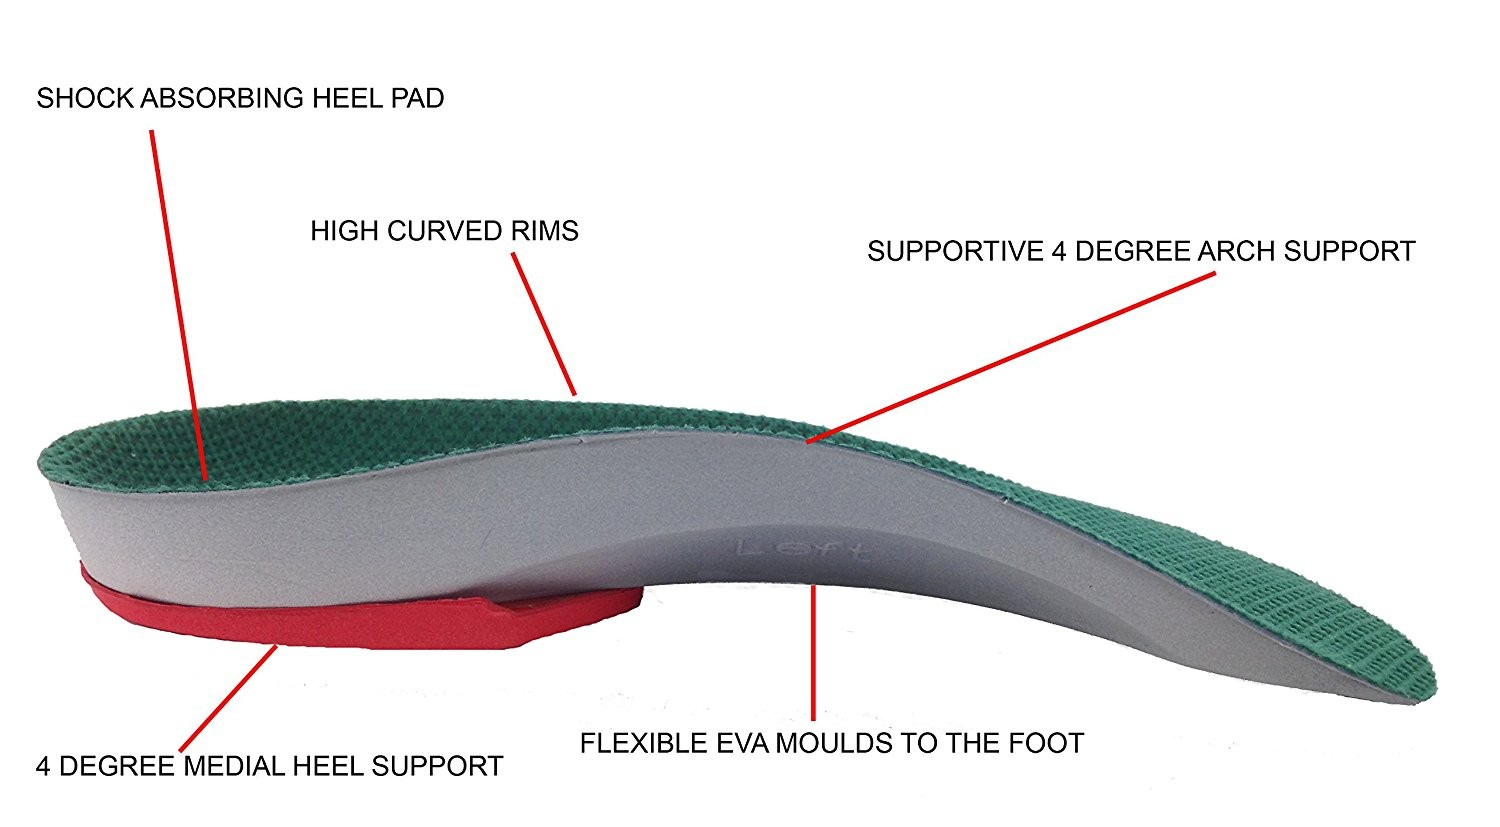 Ultimate Heel Pain Orthotics Dr Foot Pro Insoles with 4 Degree Medial Wedge and 4 Degree Forefoot Lateral Wedge